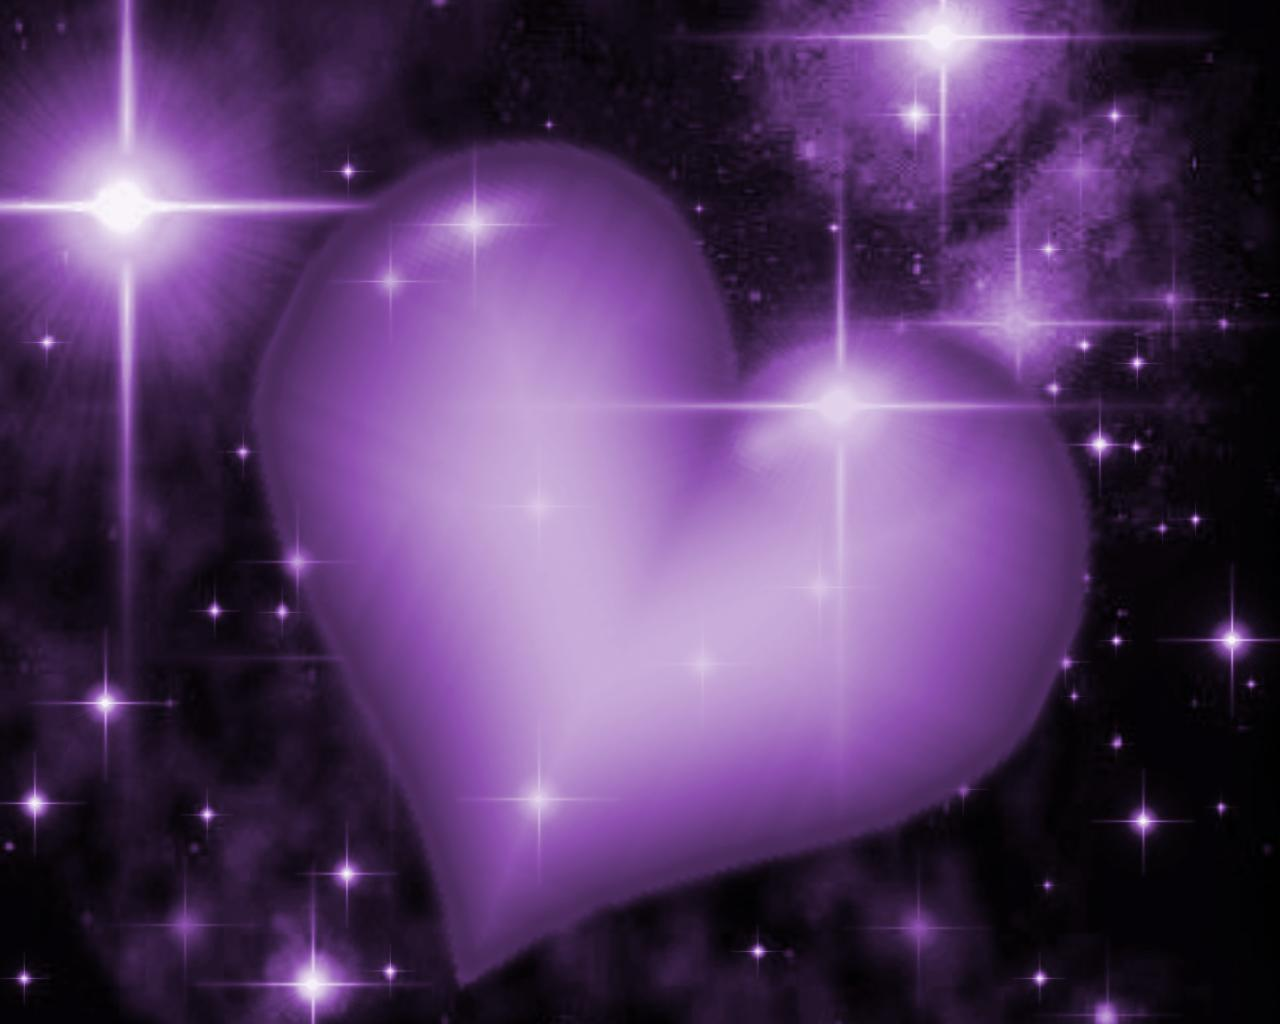 Another just for fun entry  - Purple Hearts And Stars Background